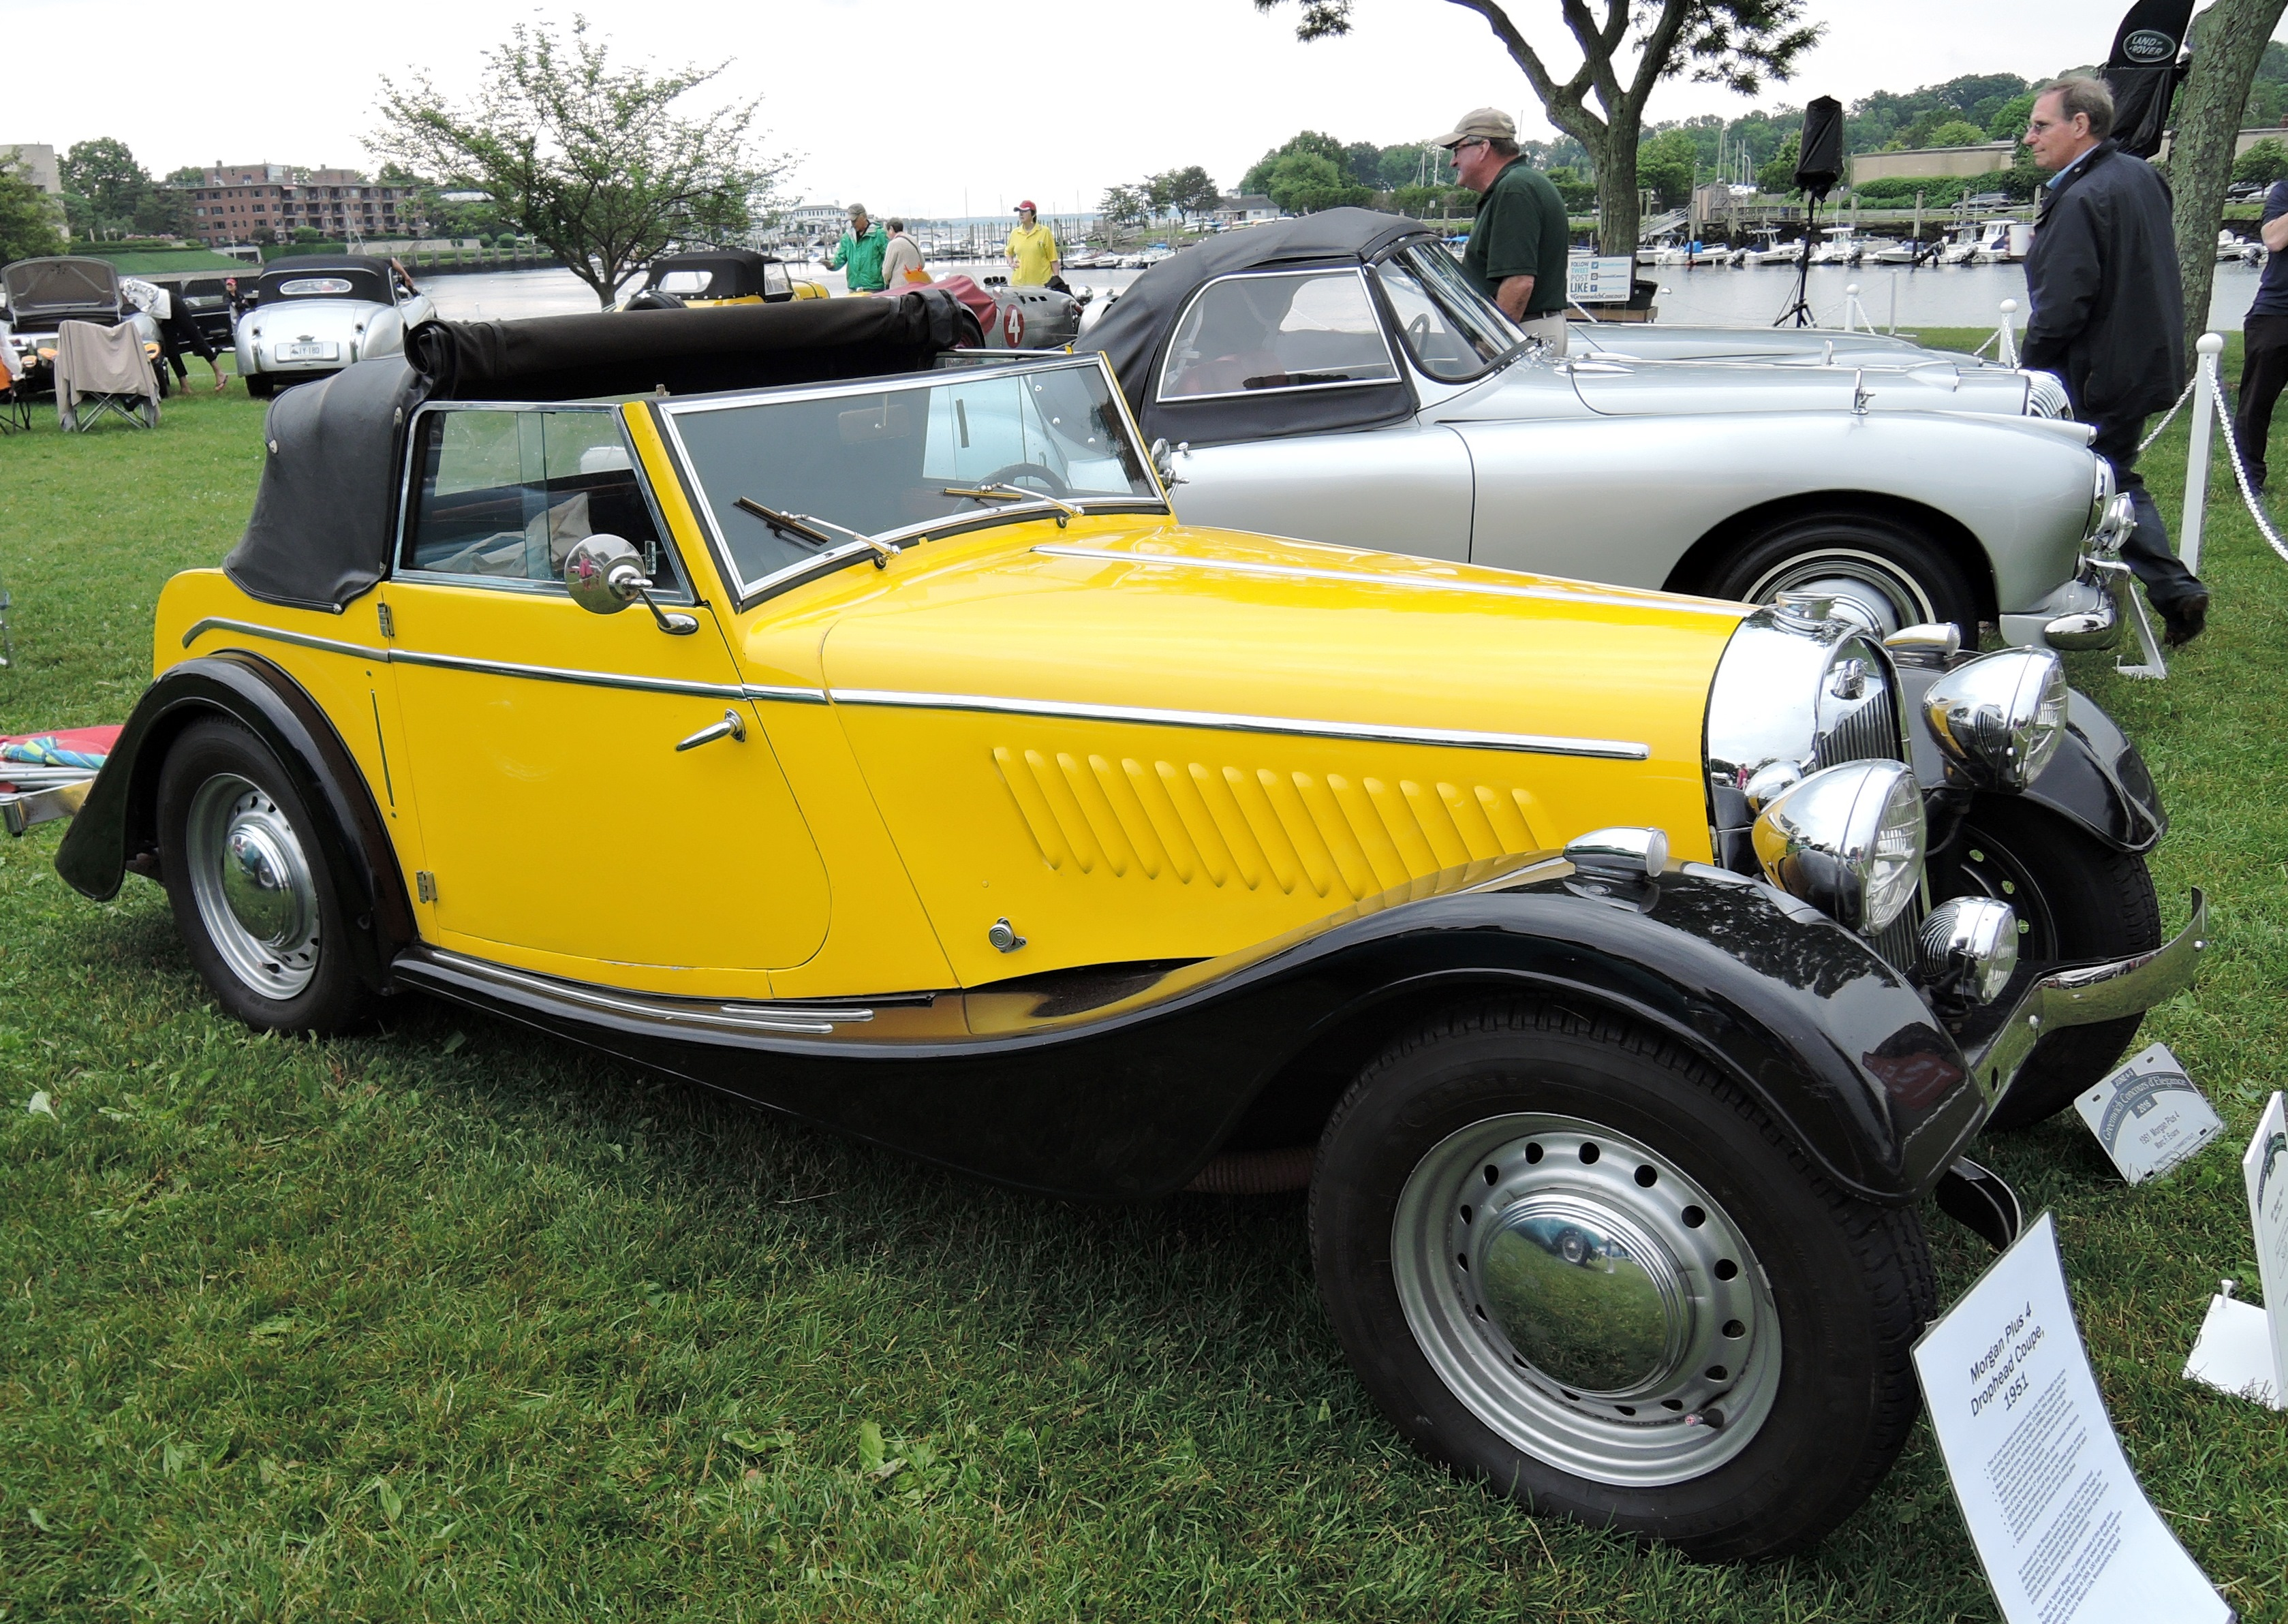 yellow 1951 Morgan Plus 4 Drophead Coupe - Greenwich concours d'elegance